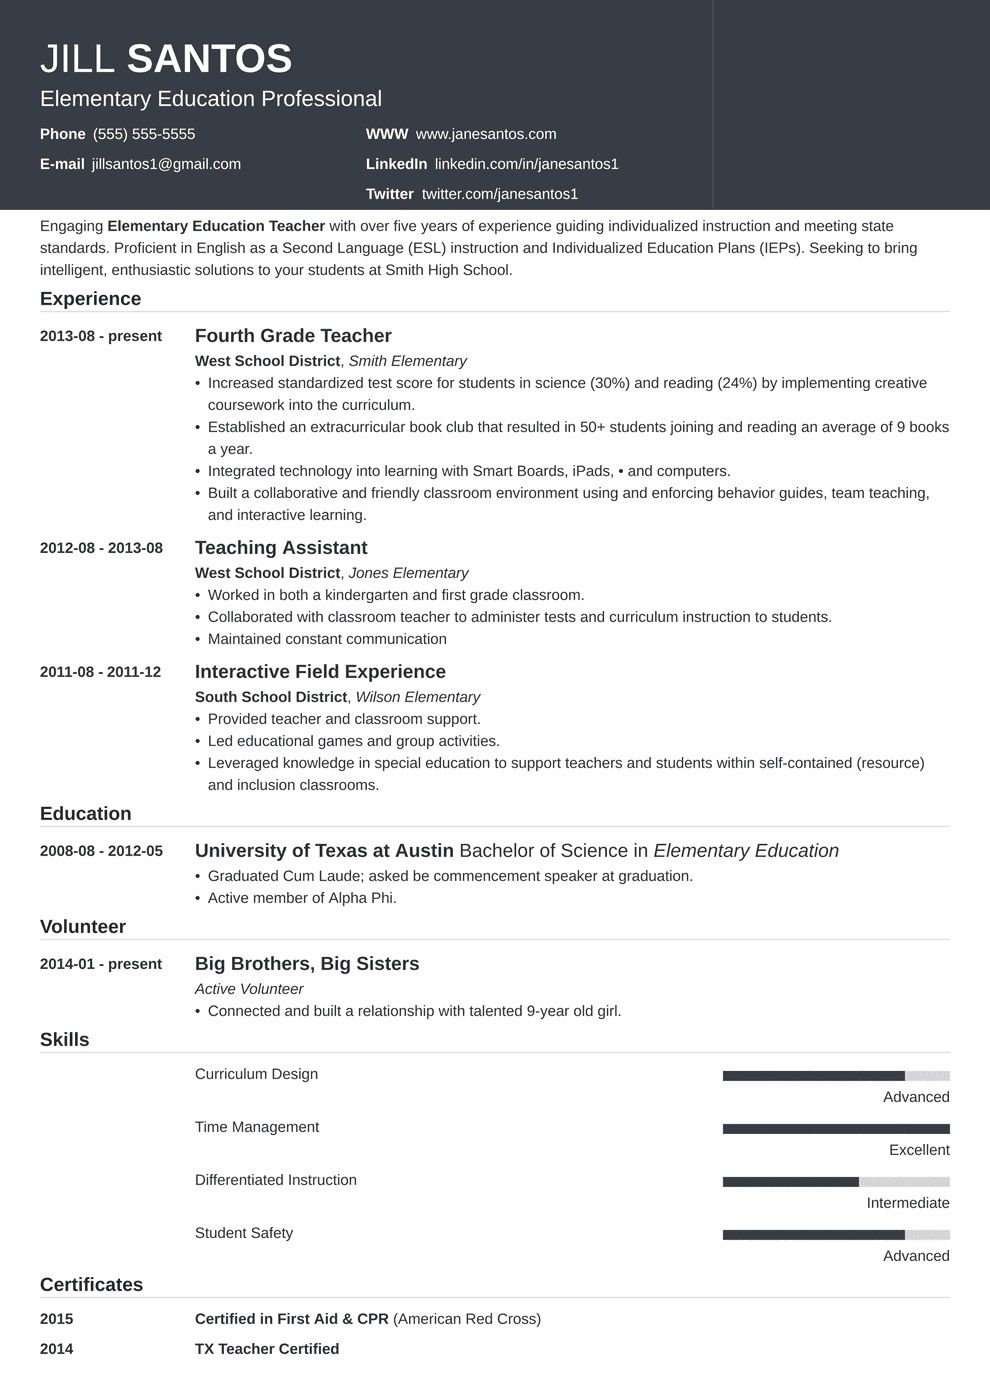 004 Archaicawful Resume Template For Teacher Highest Clarity  Australia Microsoft Word Sample